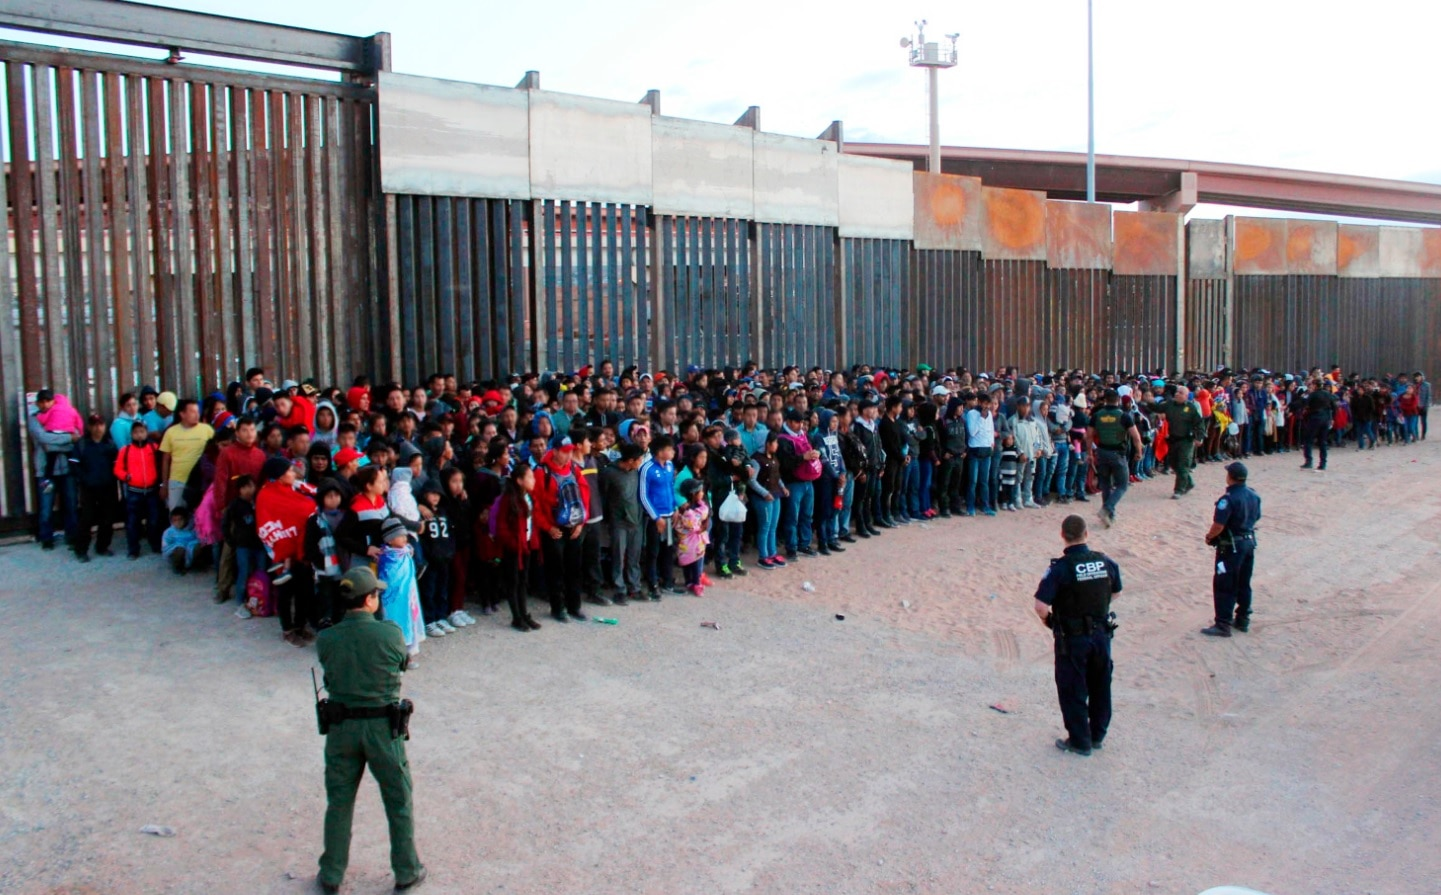 This May 29, 2019 file photo released by U.S. Customs and Border Protection (CBP) shows some of 1,036 migrants who crossed the US-Mexico border in El Paso